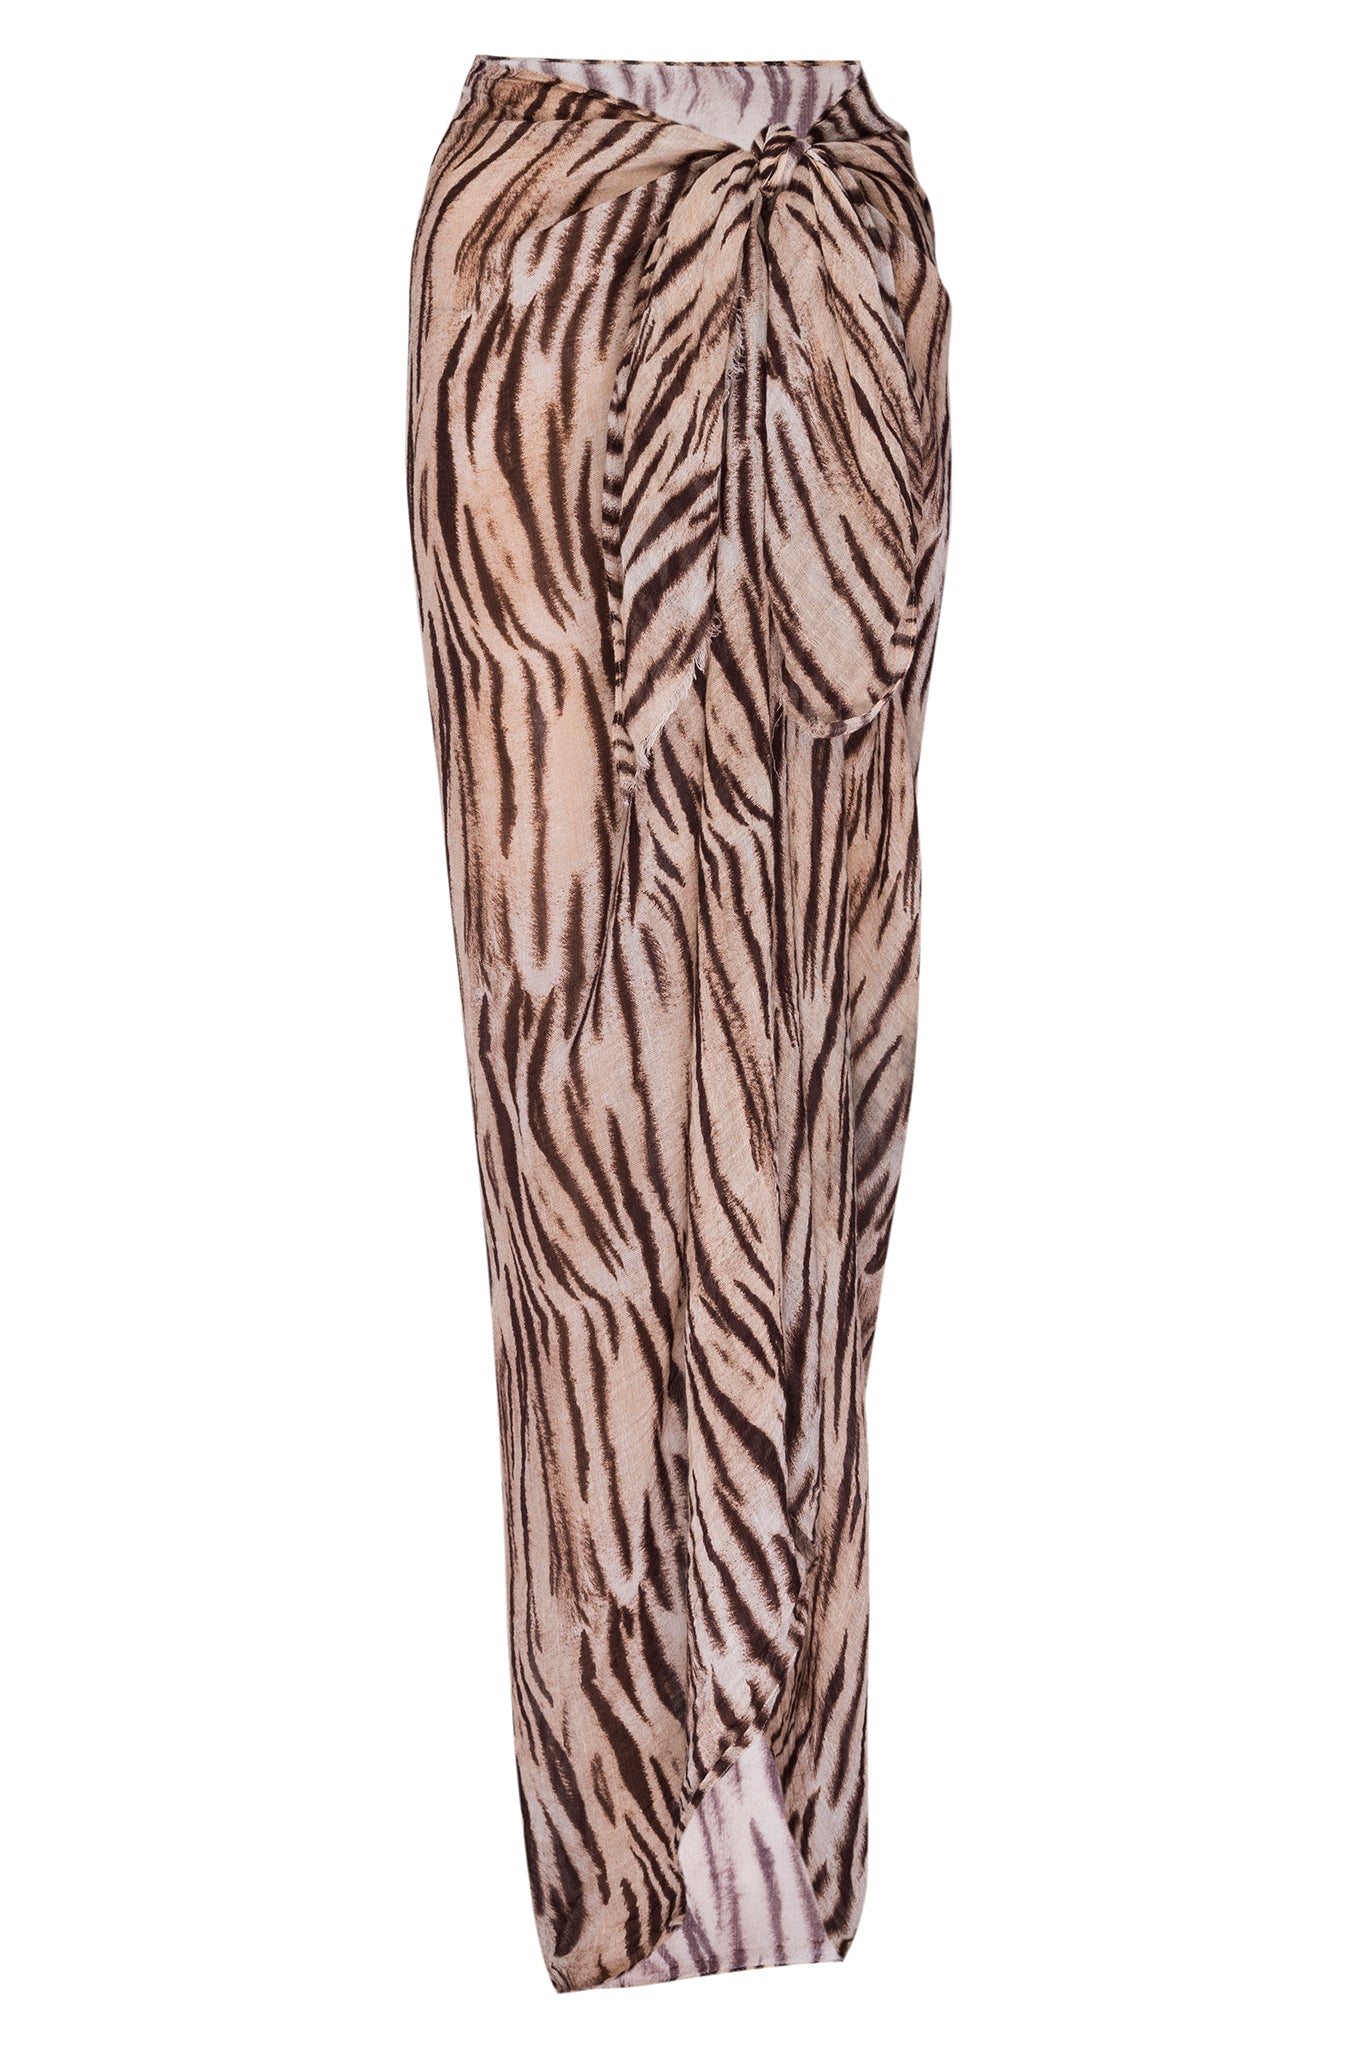 Load image into Gallery viewer, St. Tropez Sarong - Tiger